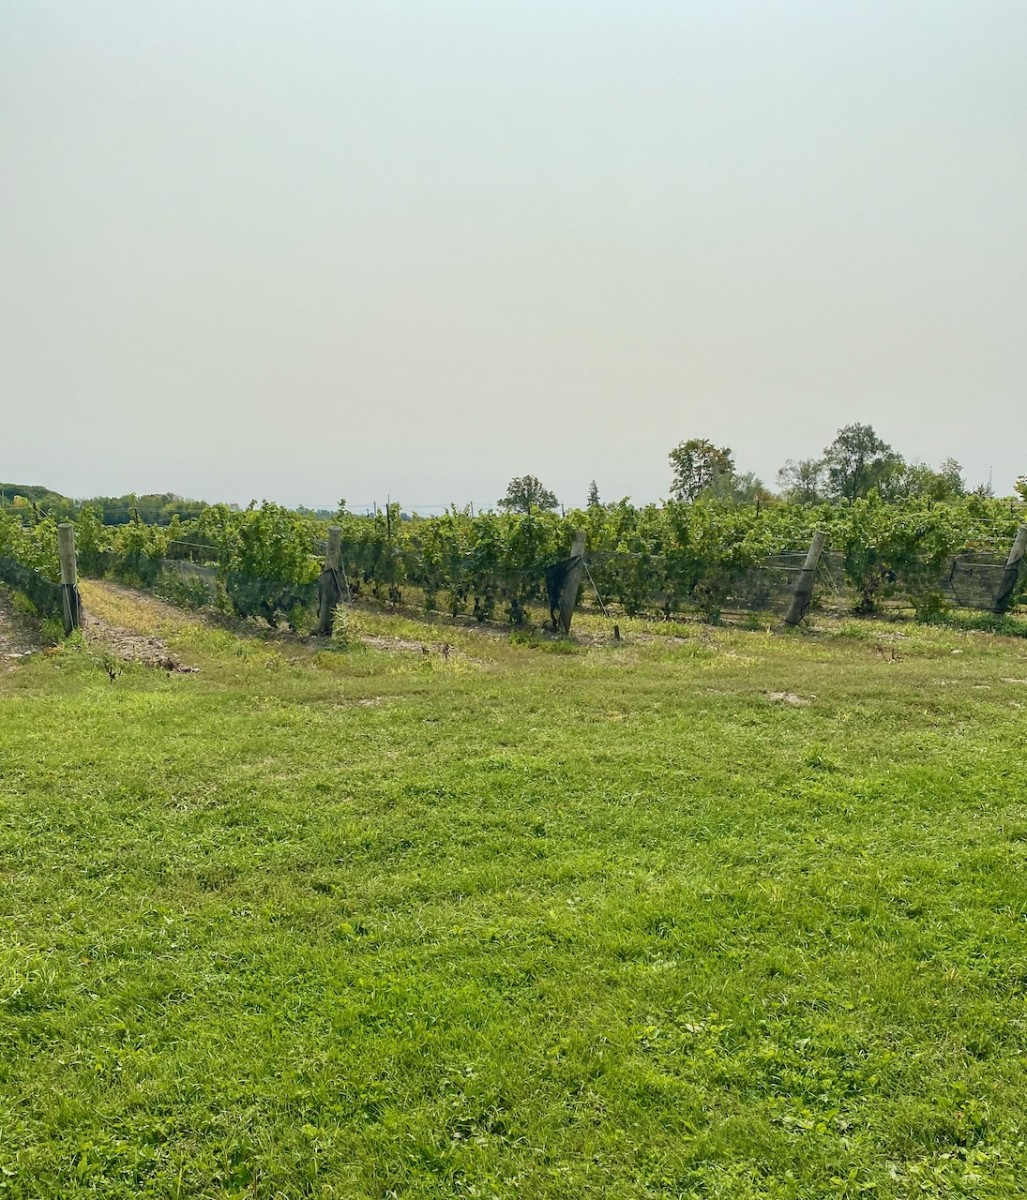 Winery in Prince Edward County